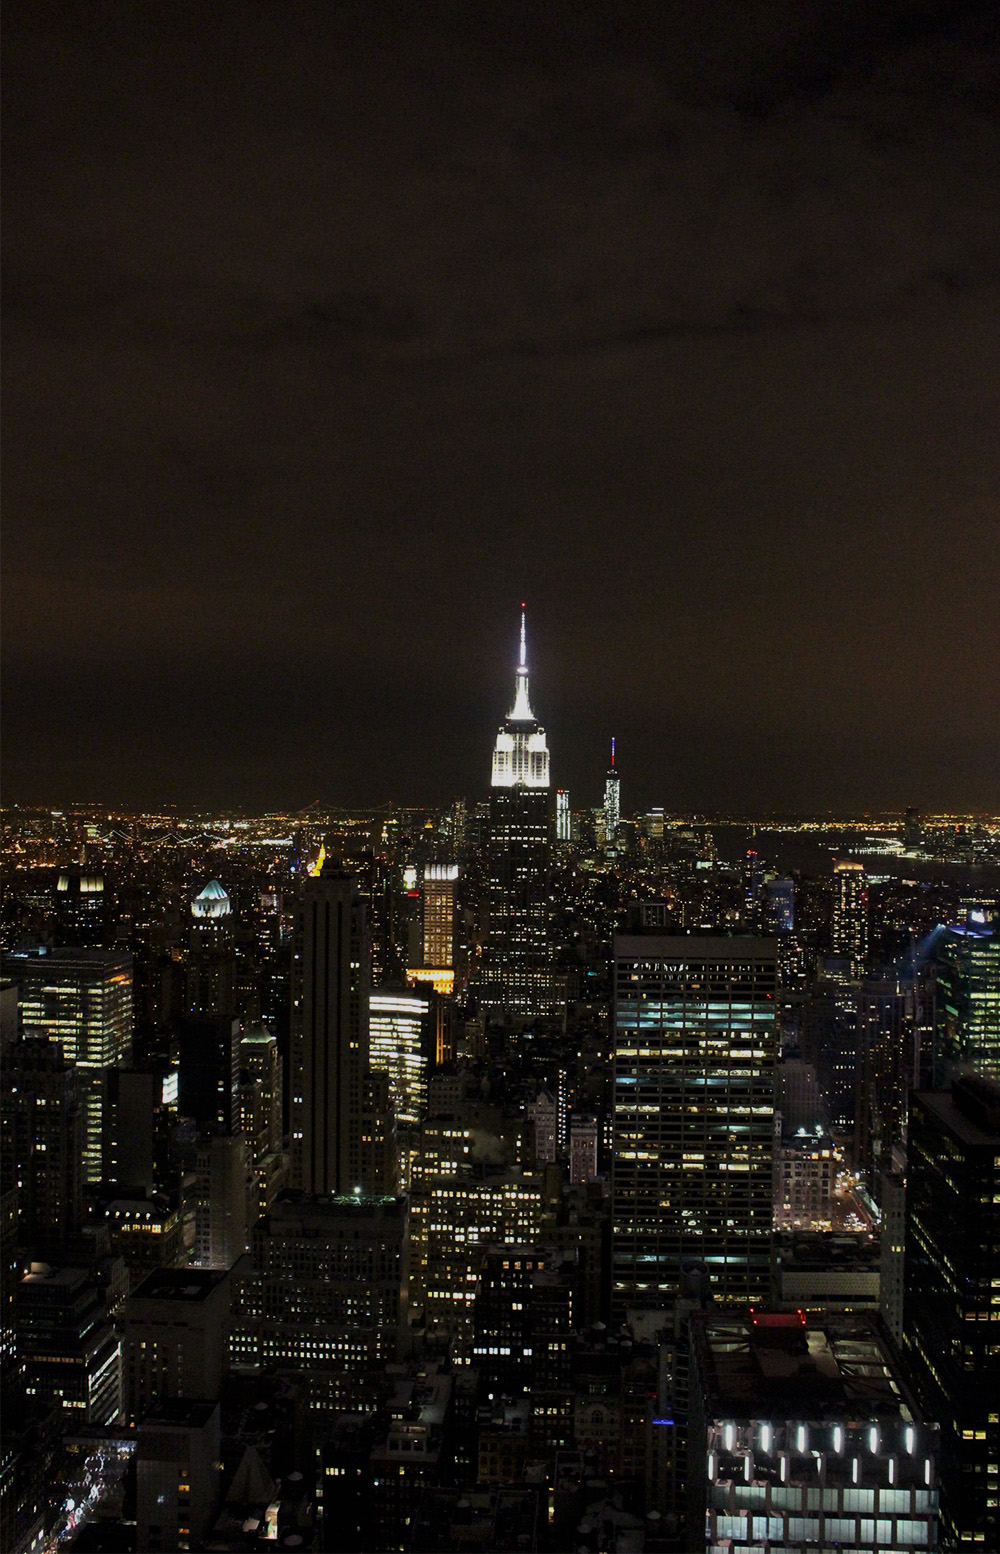 IHEARTALICE.DE – Fashion & Travel-Blog by Alice M. Huynh from Germany: New York / NYC Travel  & Food Diary – Leben in New York: Aussicht aufs Empire State Building vom Rockafeller Center